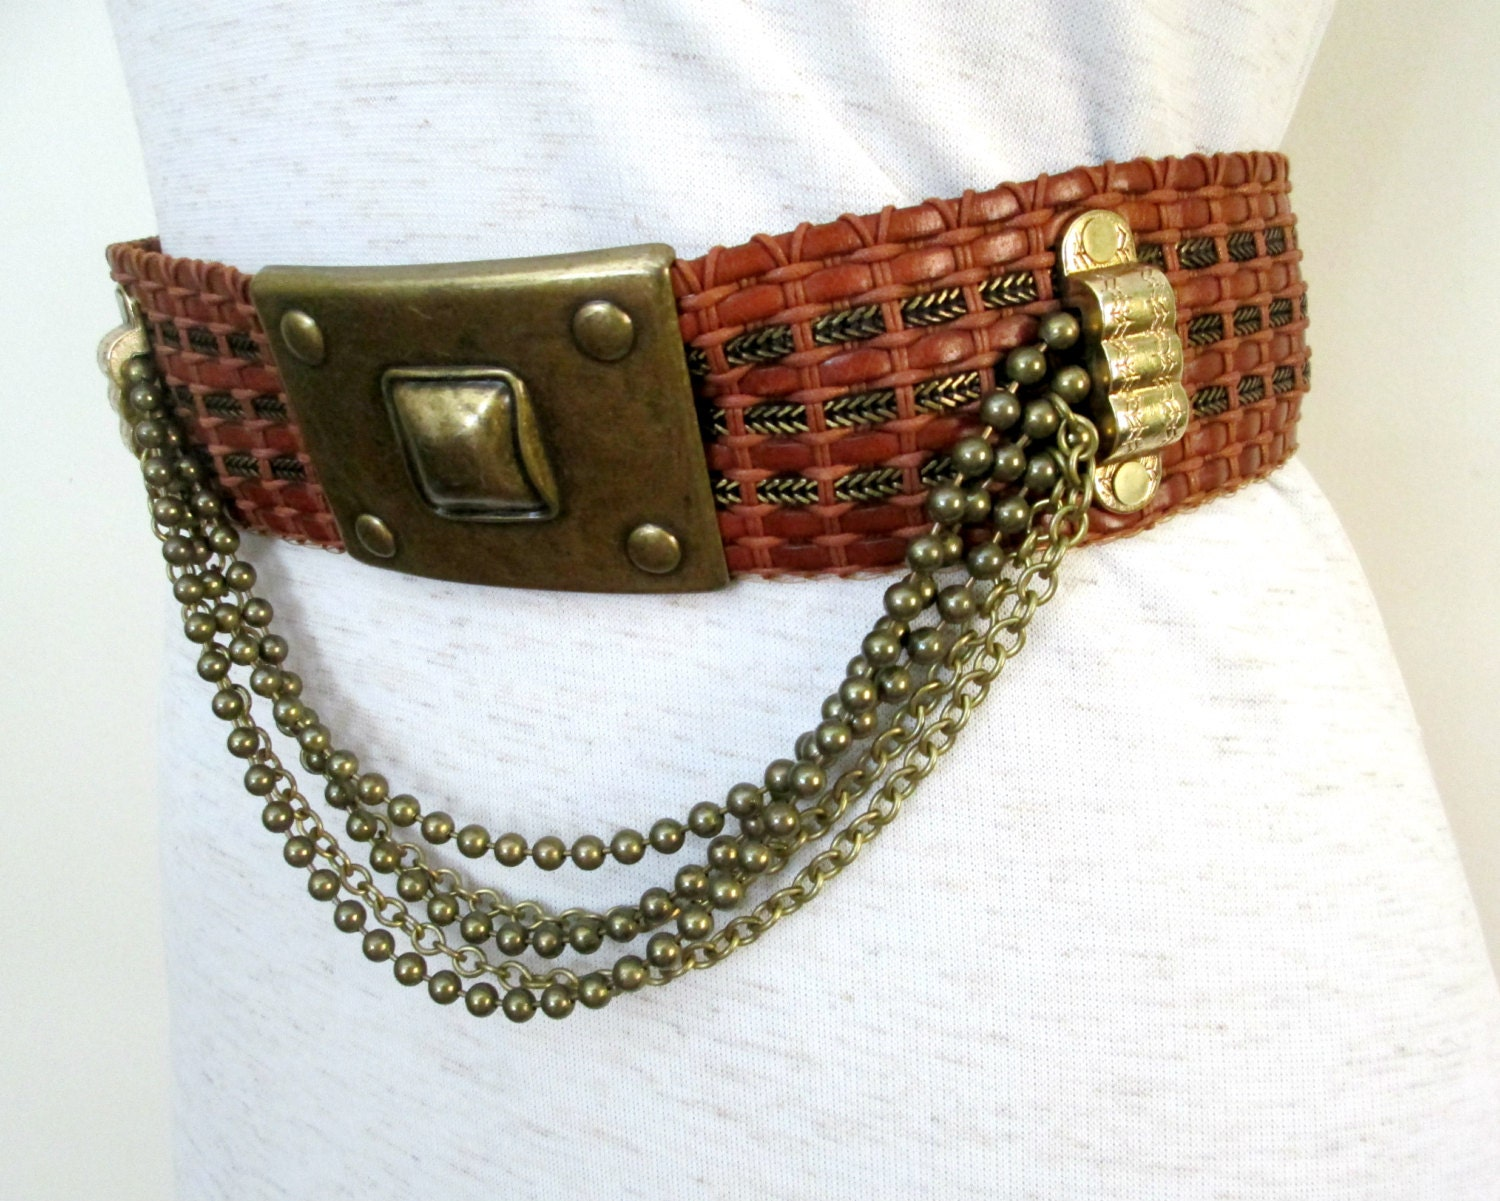 woven brown leather chain belt vintage streets ahead